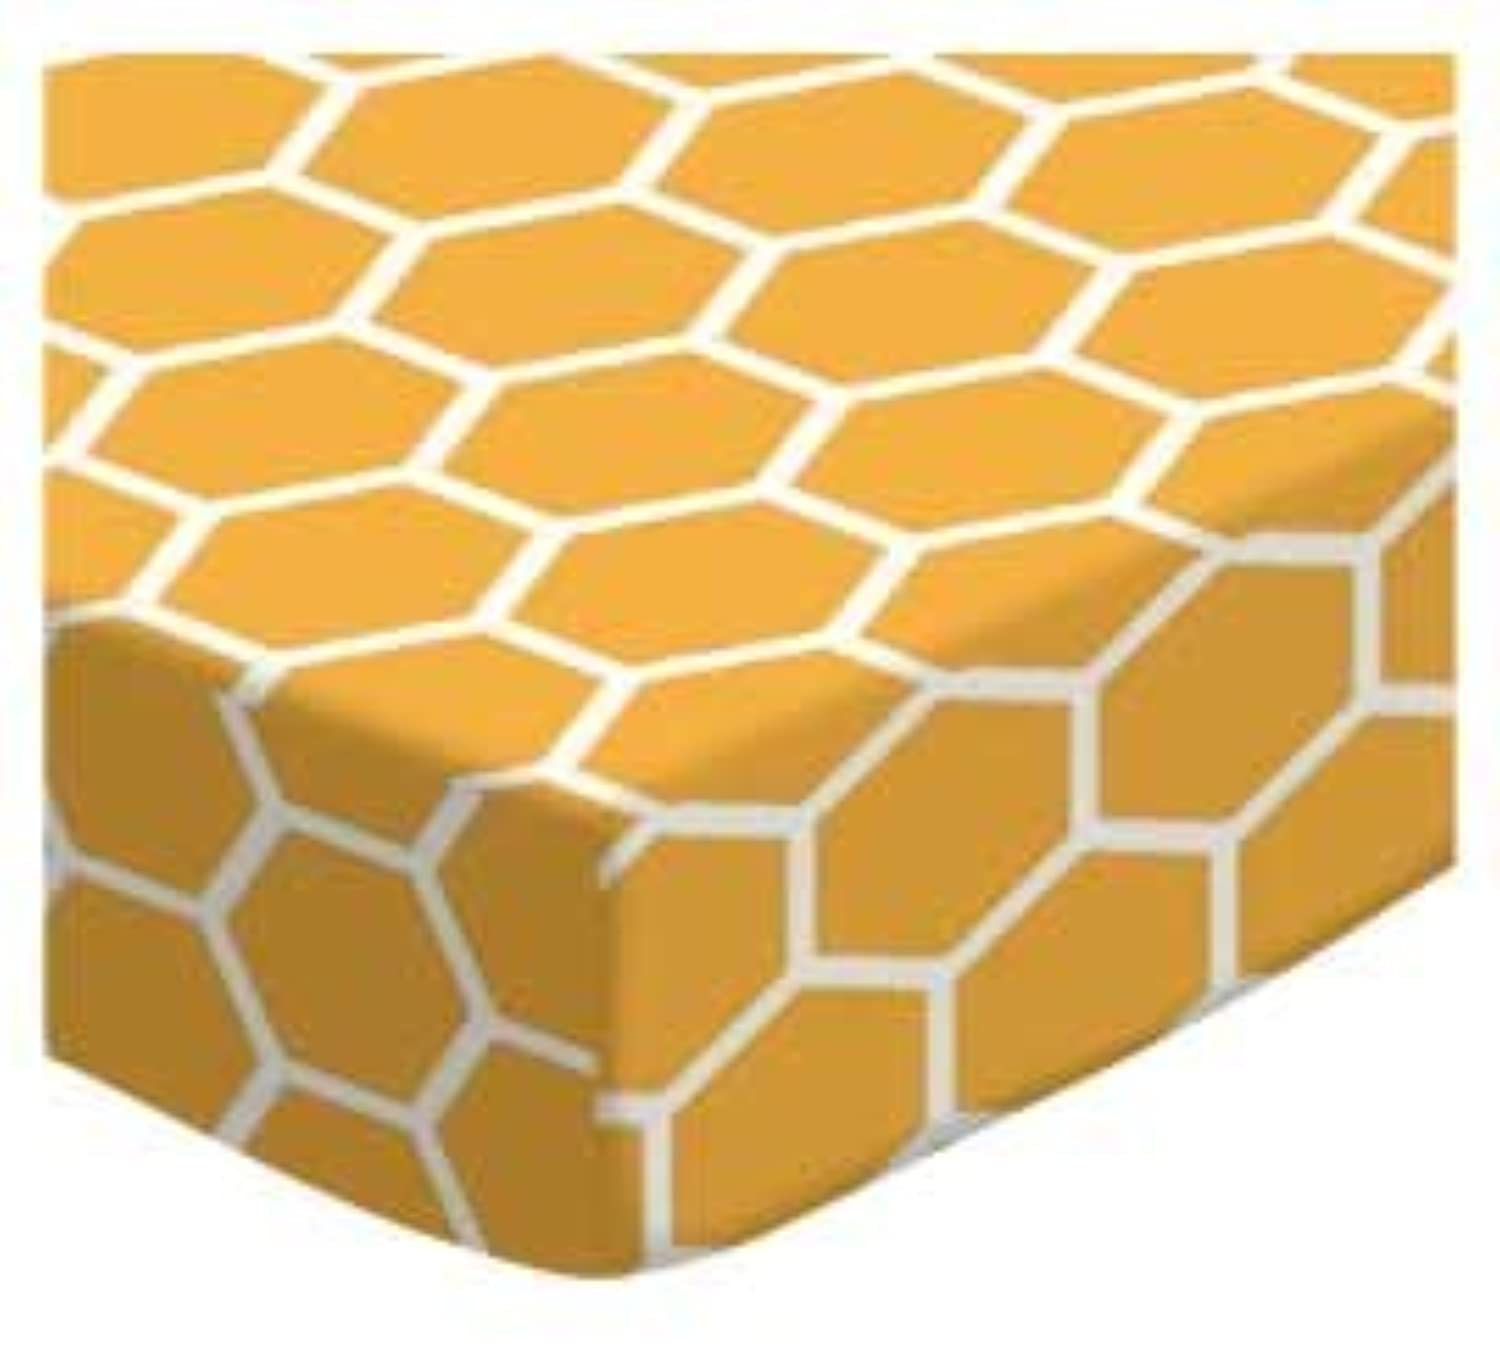 SheetWorld Fitted Cradle Sheet - Mustard Yellow Honeycomb - Made In USA by sheetworld